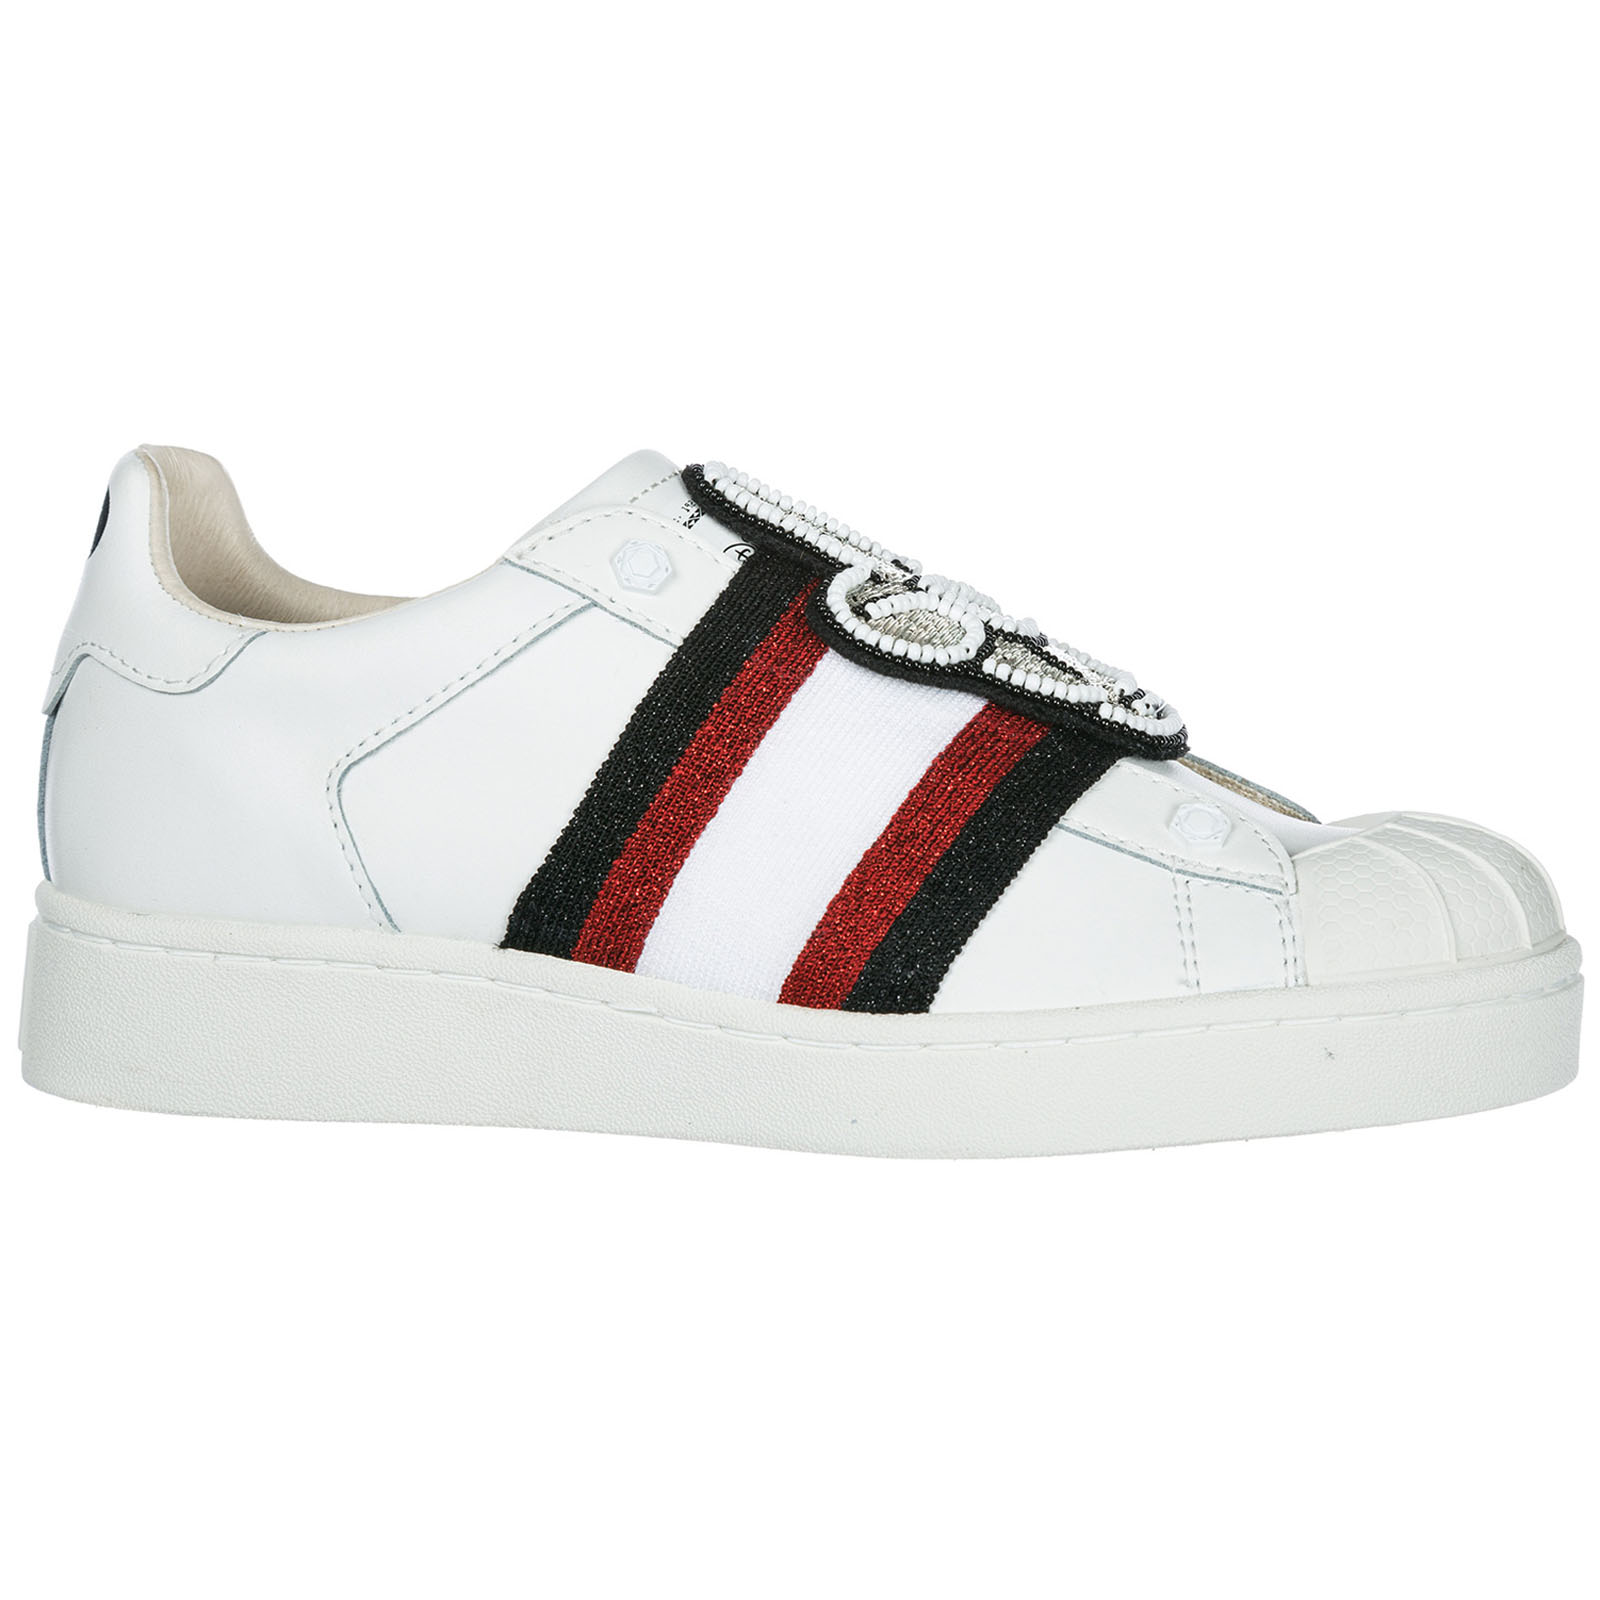 Women's shoes leather trainers sneakers mickey patch